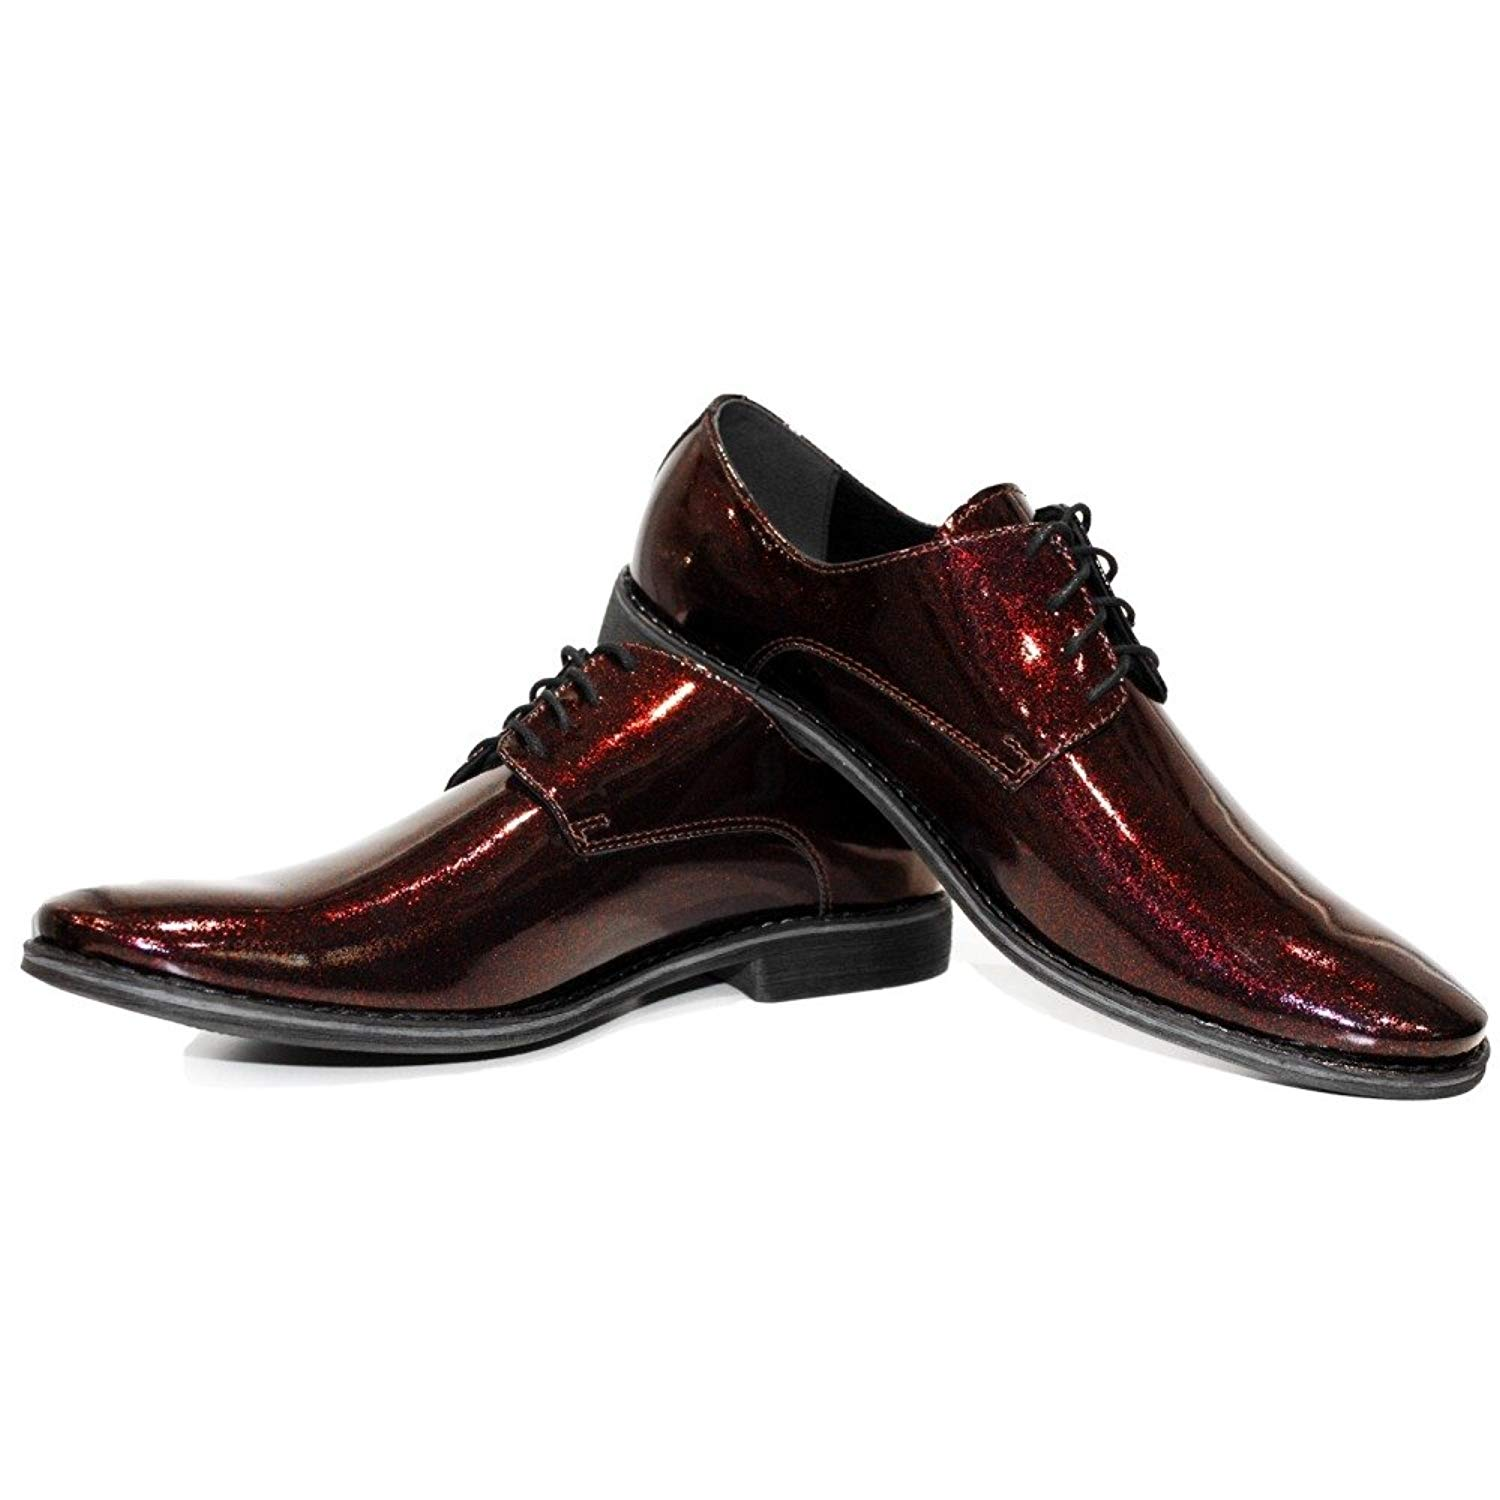 Modello Redparty - Handmade Italian Mens Red Oxfords Dress Shoes - Cowhide Patent Leather - Lace-up